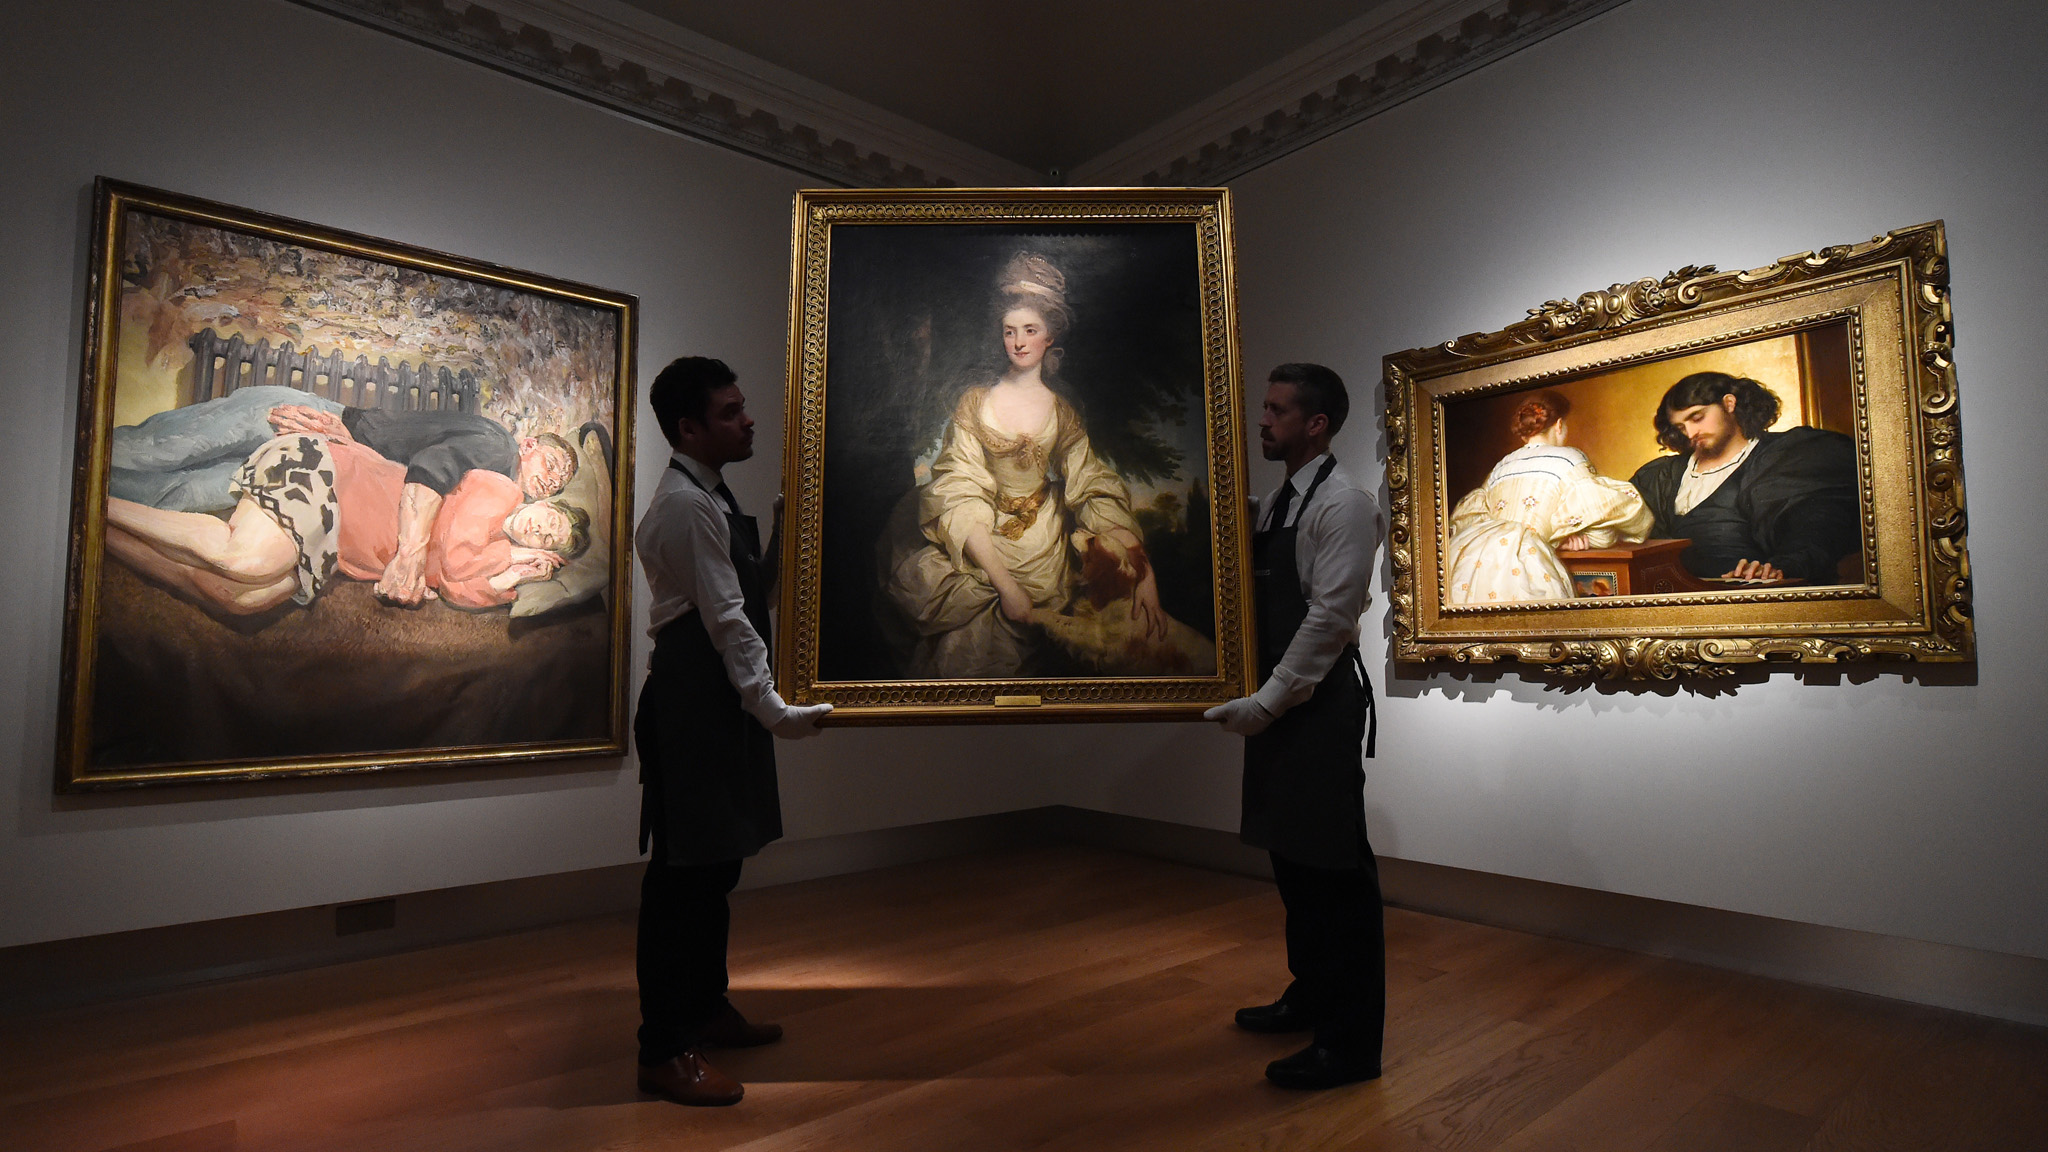 "Christie's Unveil Three Important Works From Their Summer Sale...LONDON, ENGLAND - APRIL 28:  (L-R) ""Ib and Her Husband"" 1992 by Lucian Freud, estimate on request in the region of 18 million pounds, ""Portrait of Lucy Long, Mrs George Hardinge"" 1778 by Sir Joshua Reynolds P.R.A, estimate 2-3 million pounds, and ""Golden Hours"" 1864 by Frederic, Lord Leighton, estimate 3-5 million pounds on April 28, 2016 in London, England. Christie's has unveiled three major paintings spanning three centuries for its Summer Sale to celebrate its 250th Anniversary.  (Photo by Eamonn M. McCormack/Getty Images)"